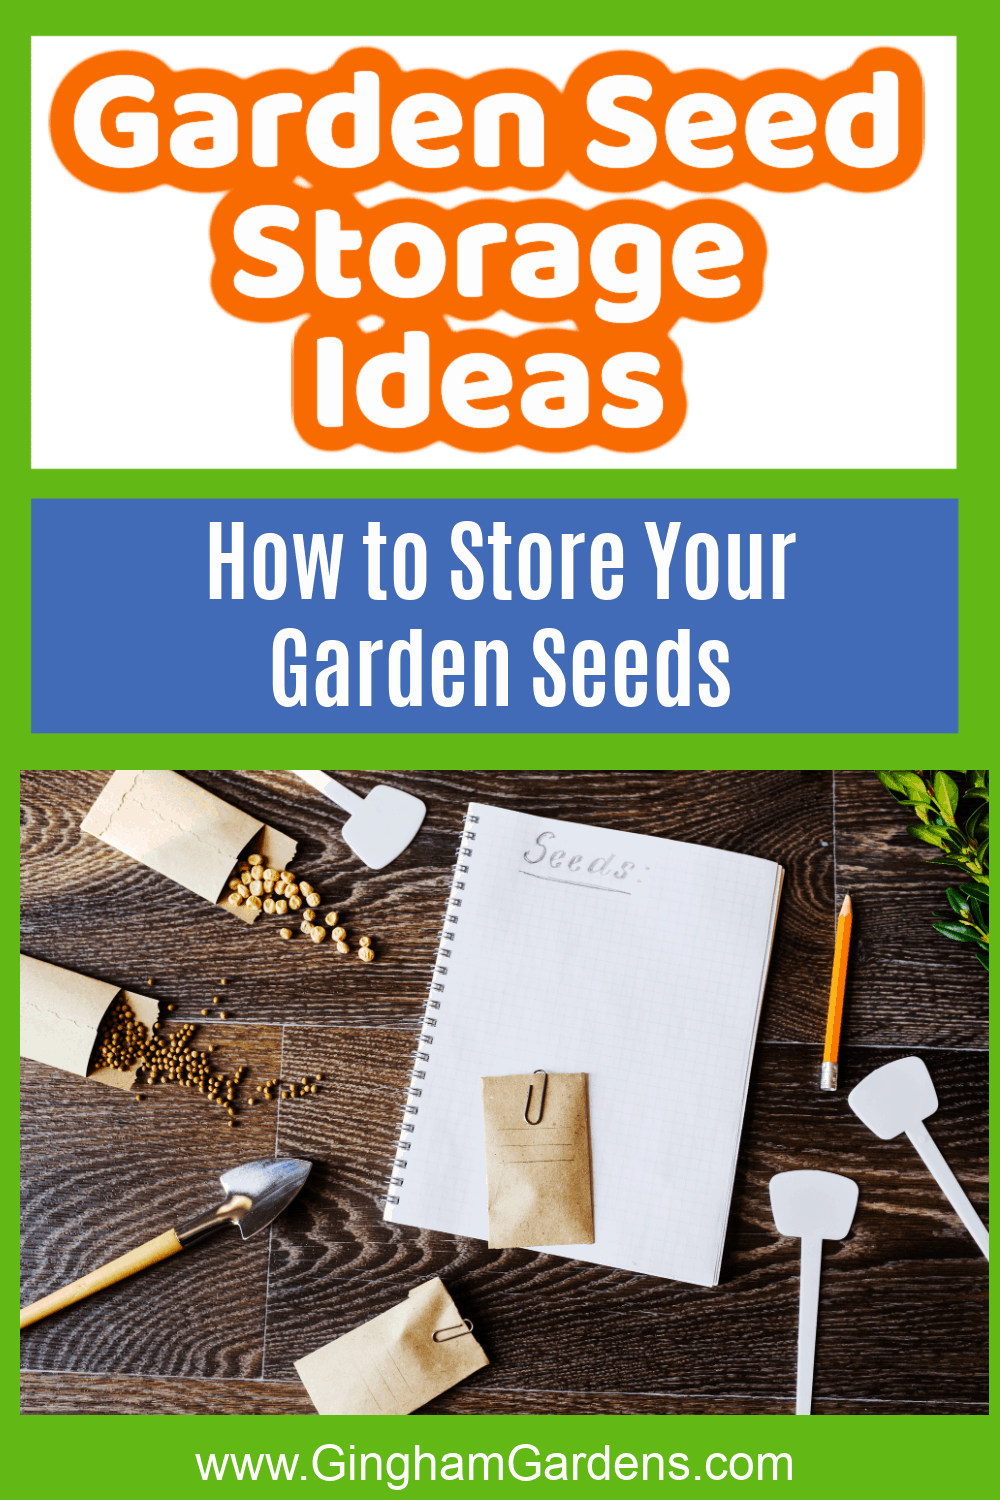 Image of garden seeds with text overlay - Garden Seeds Storage Ideas